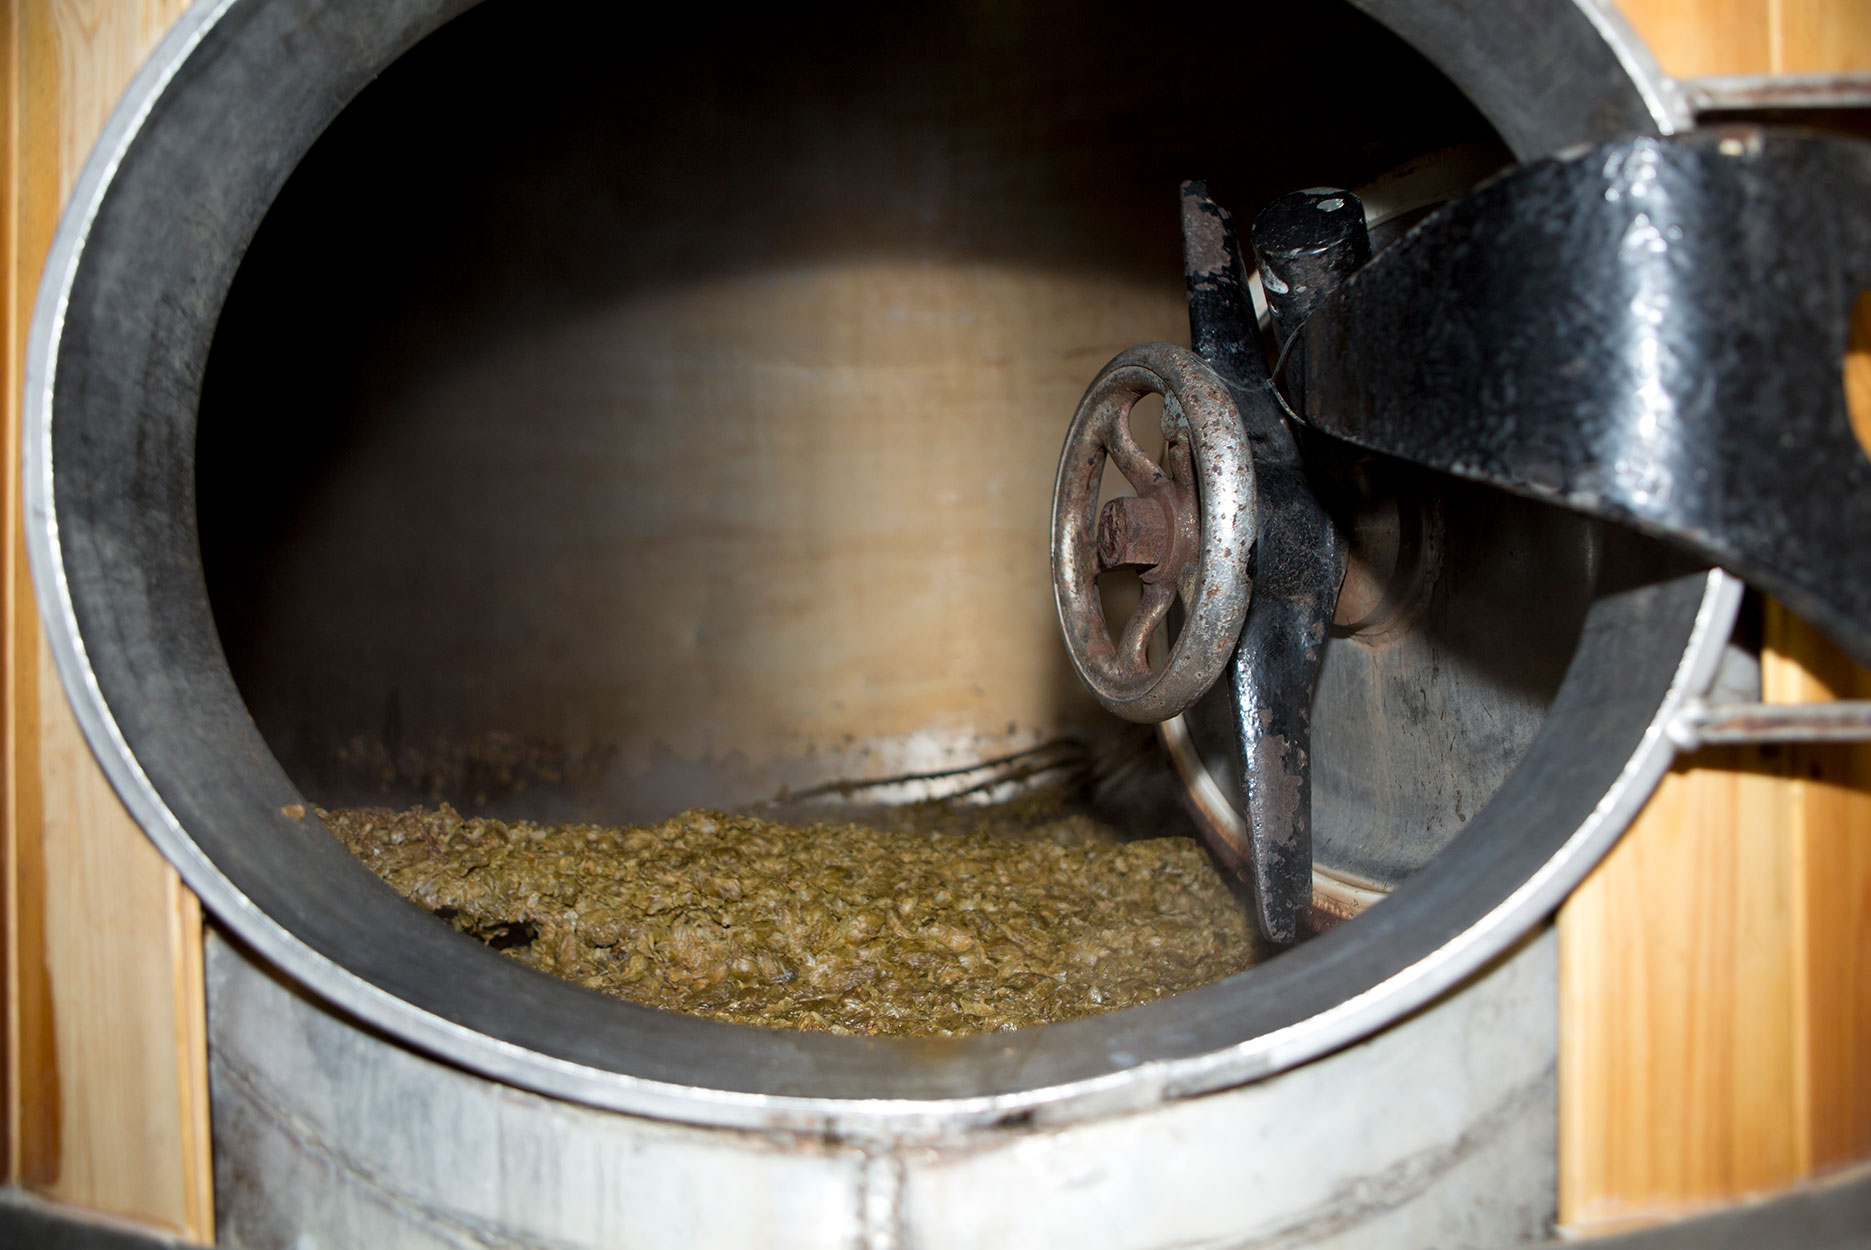 Micro brewery boiling tank with leftover millet ready to be emptied out.